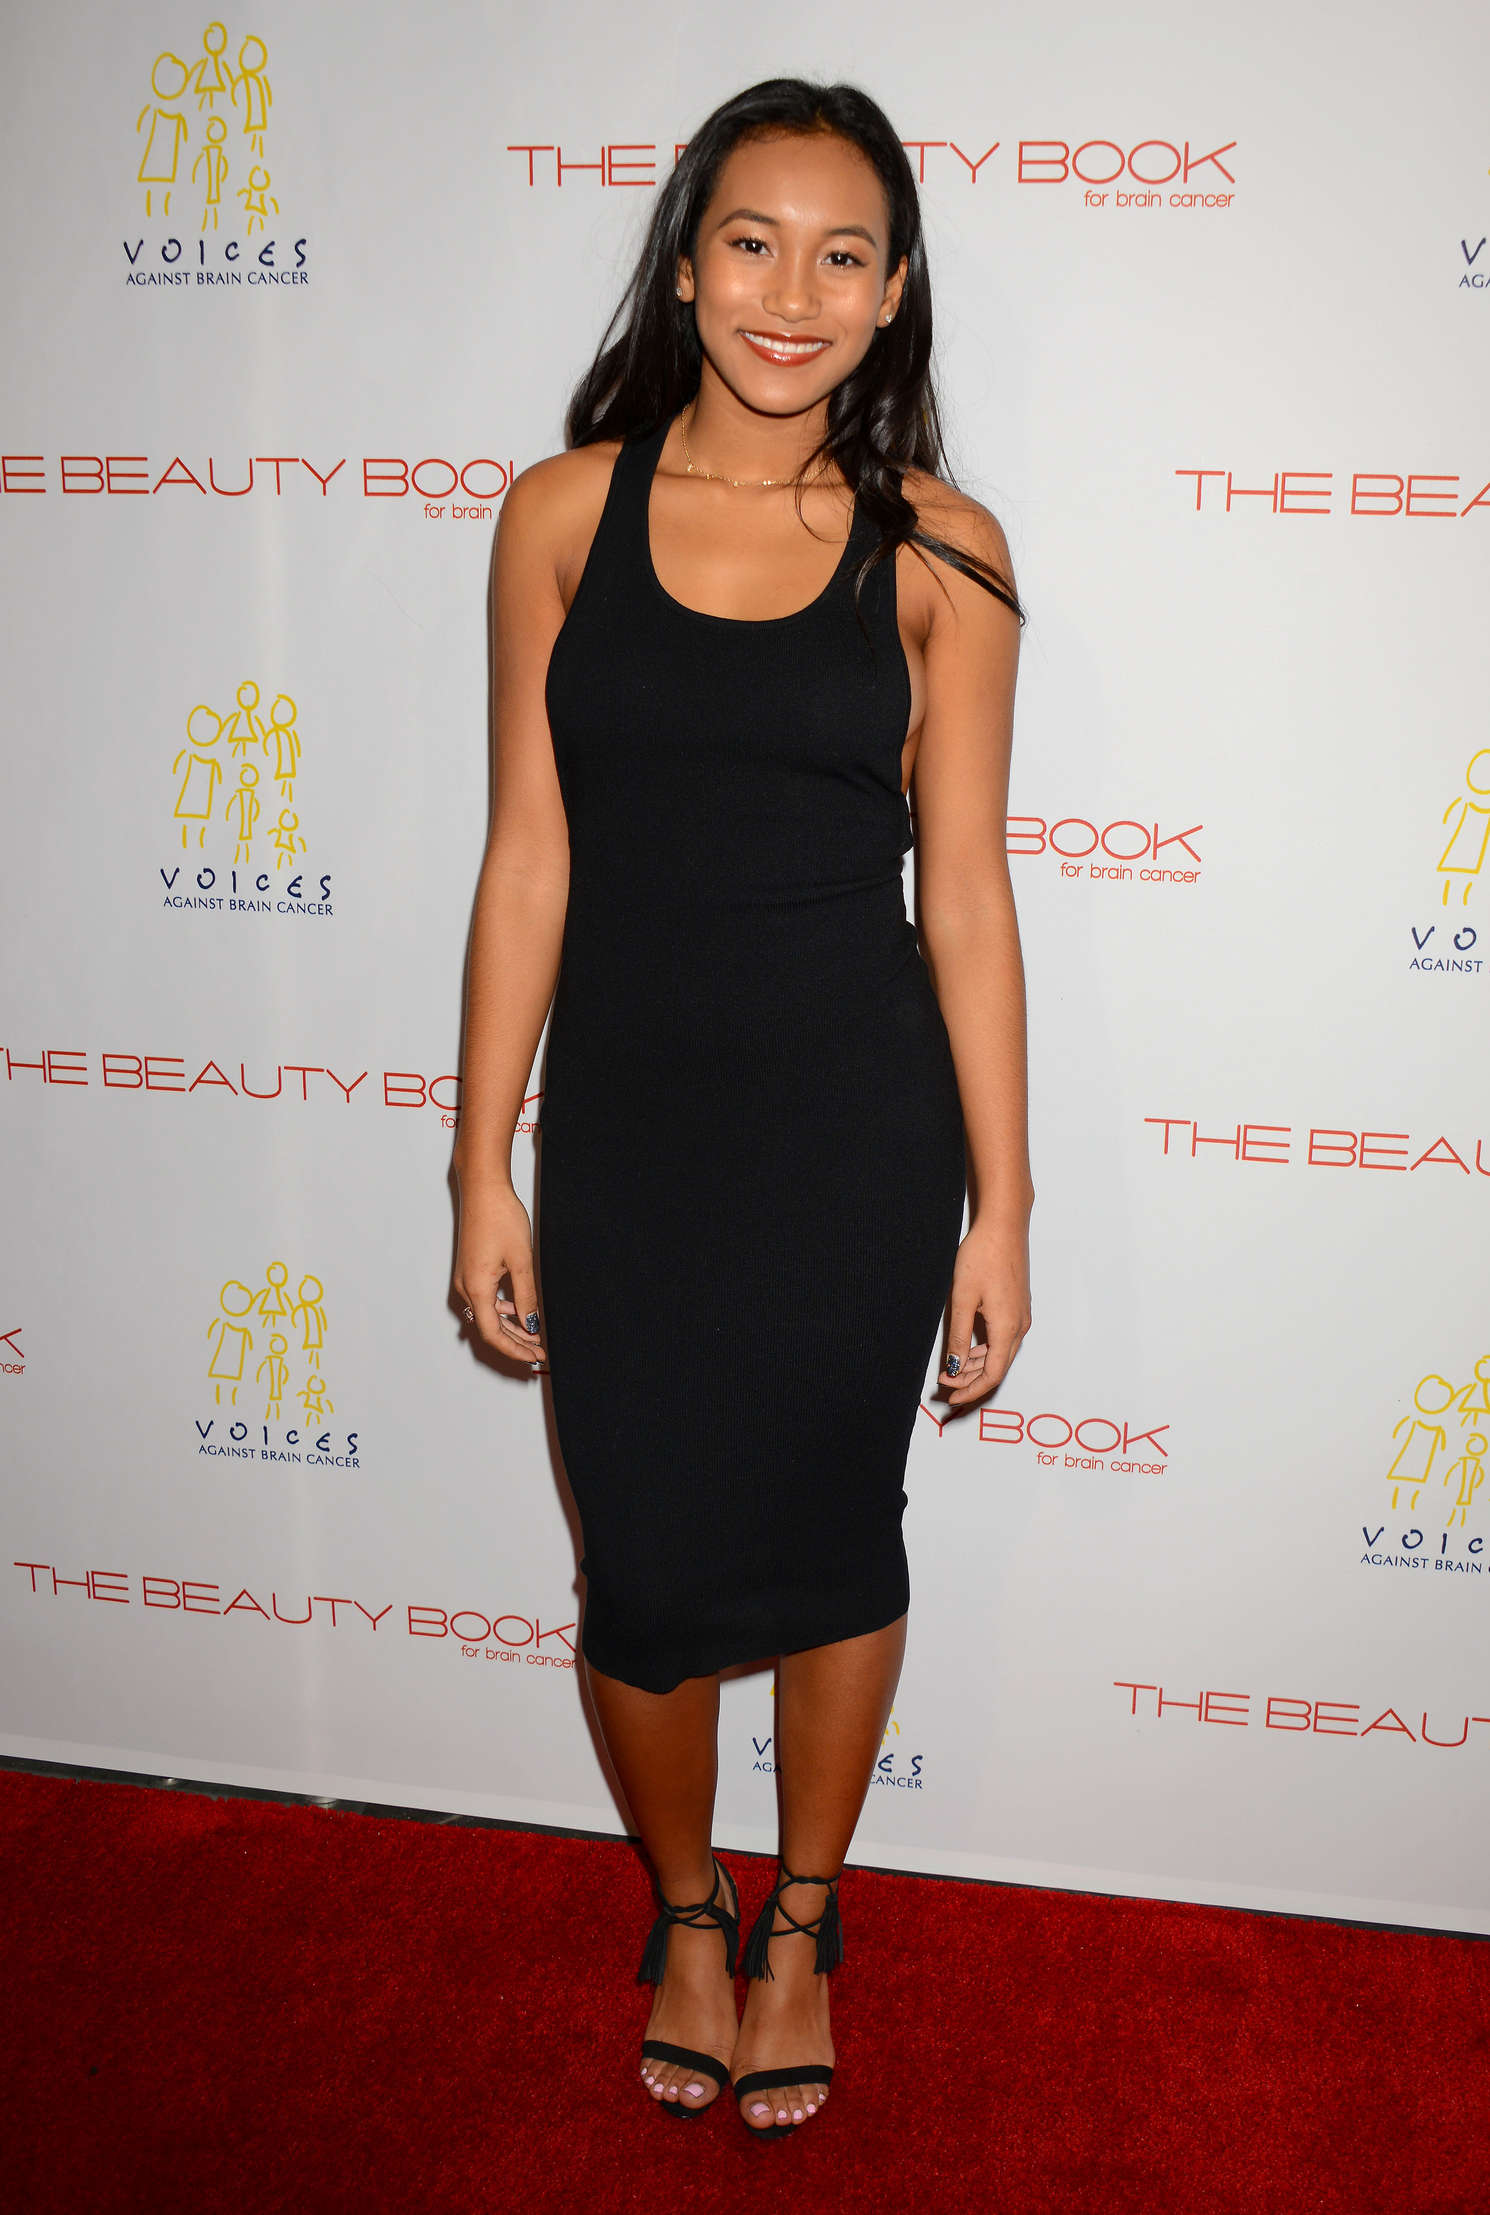 Sydney Park The Beauty Book For Brain Cancer Edition Launch Party in Hollywood